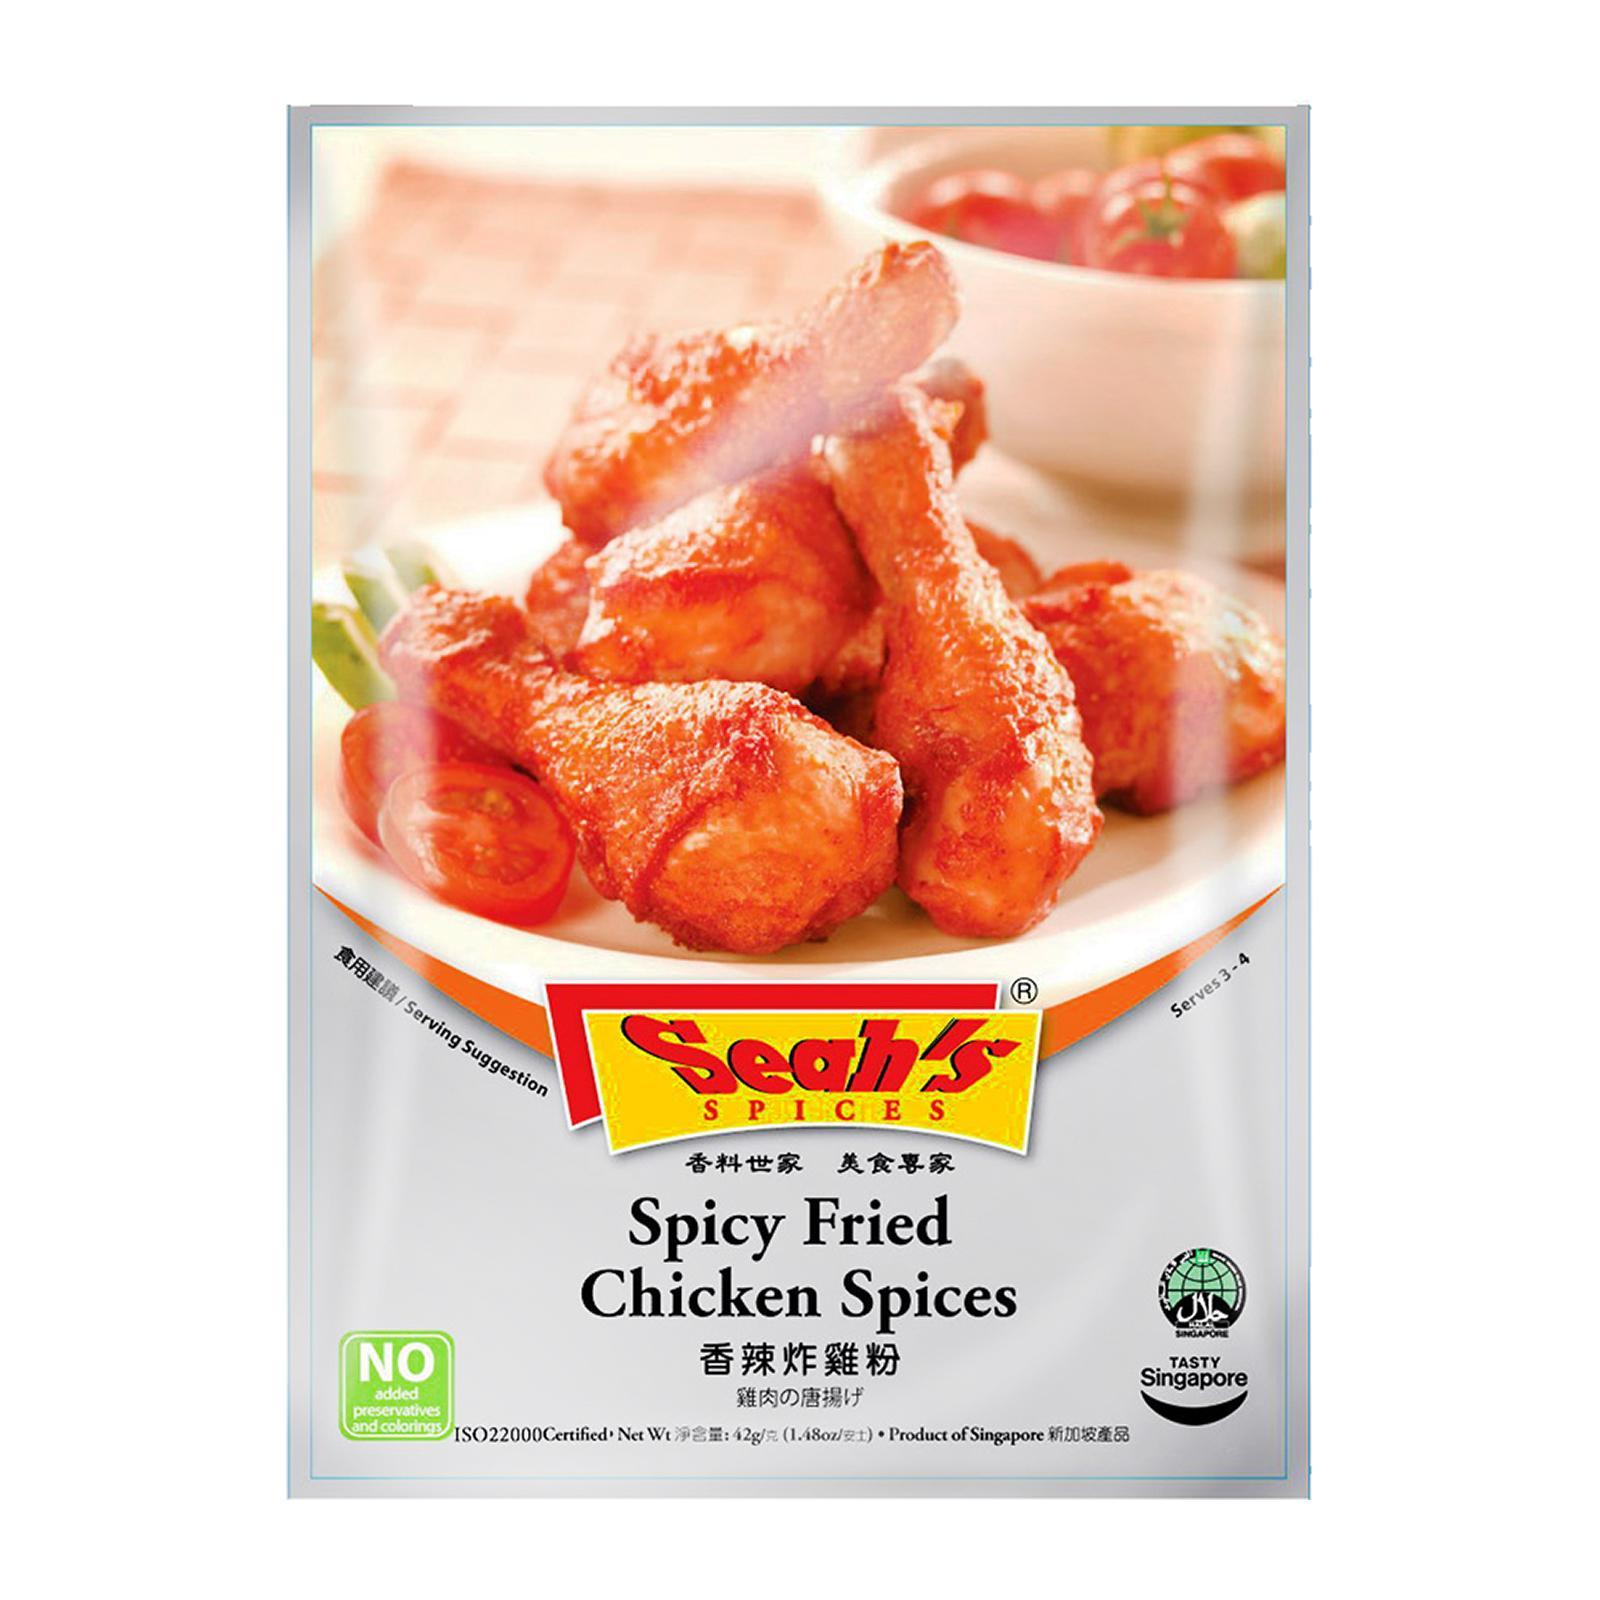 Seahs Spices - Spicy Fried Chicken Spices 42g X 3 Pack (charges Includes Shipping Fee) By Best Buy Mini Mart.